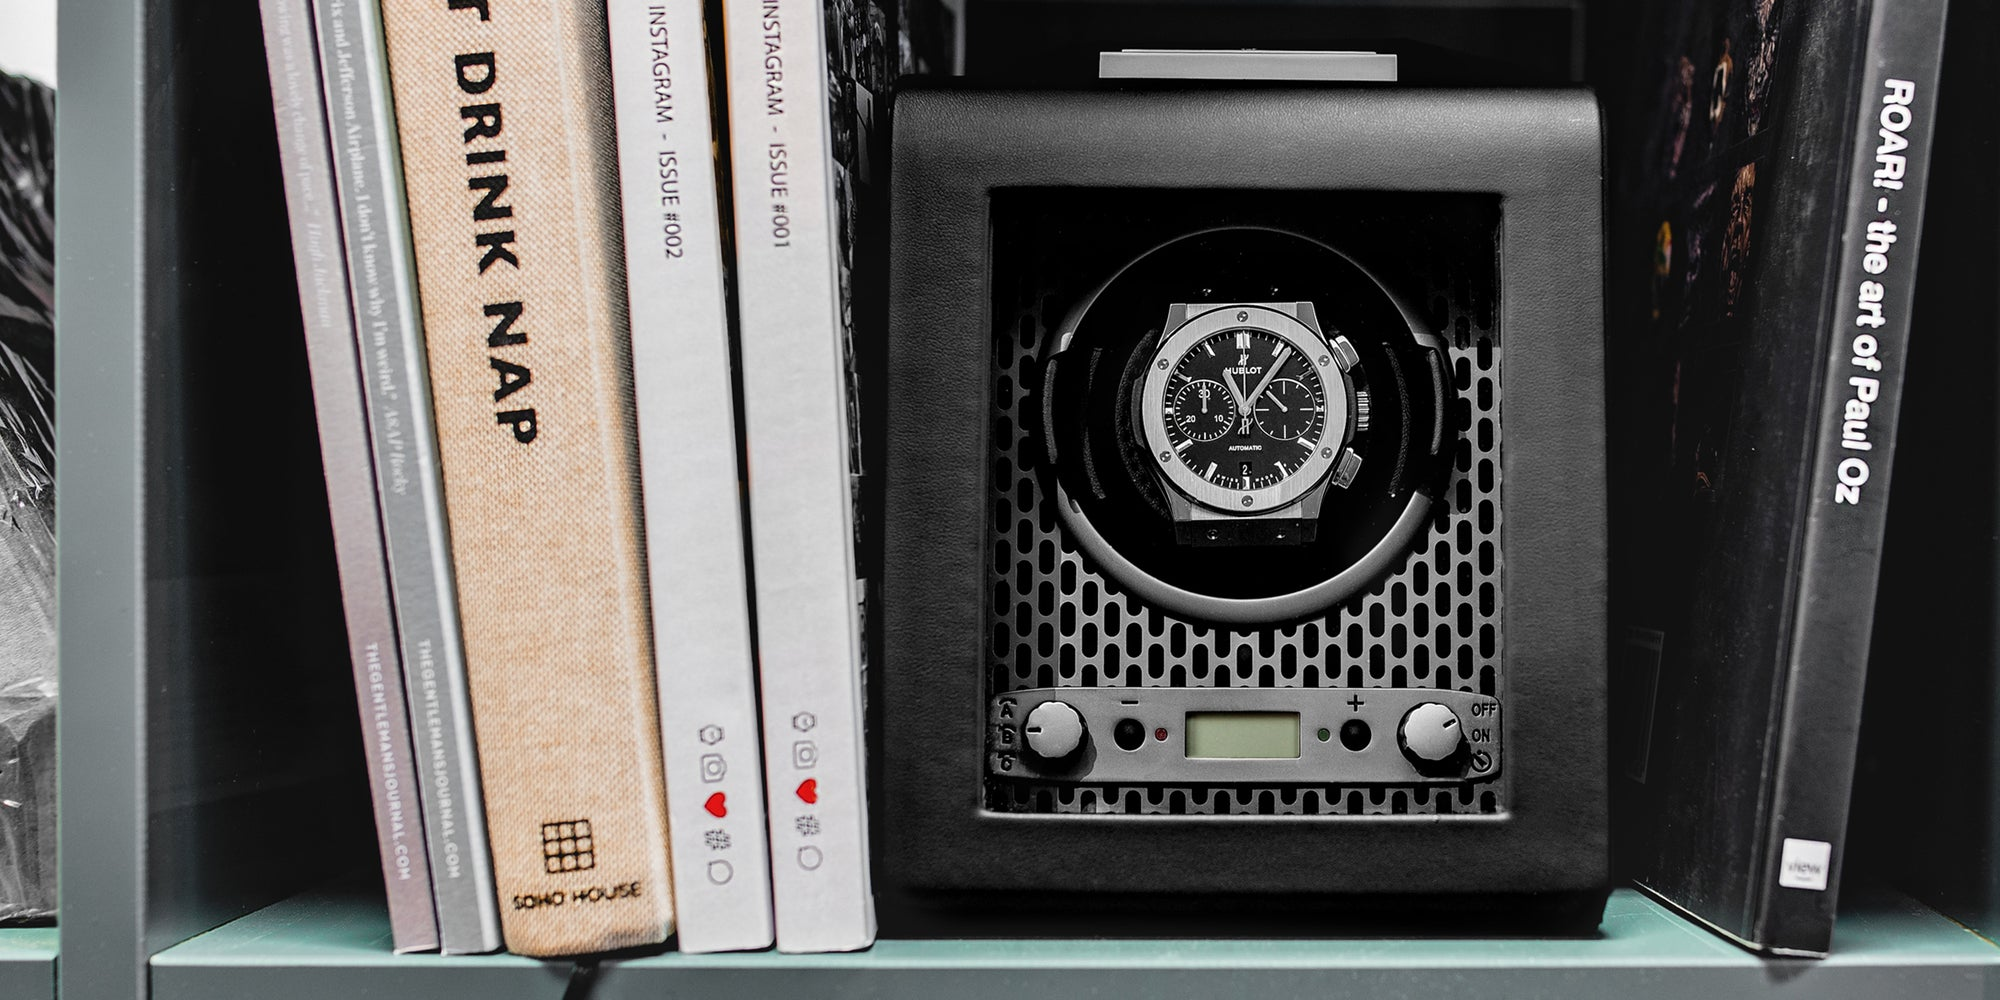 Hublot classic fusion in the WOLF Axis watch winder on a shelf with books